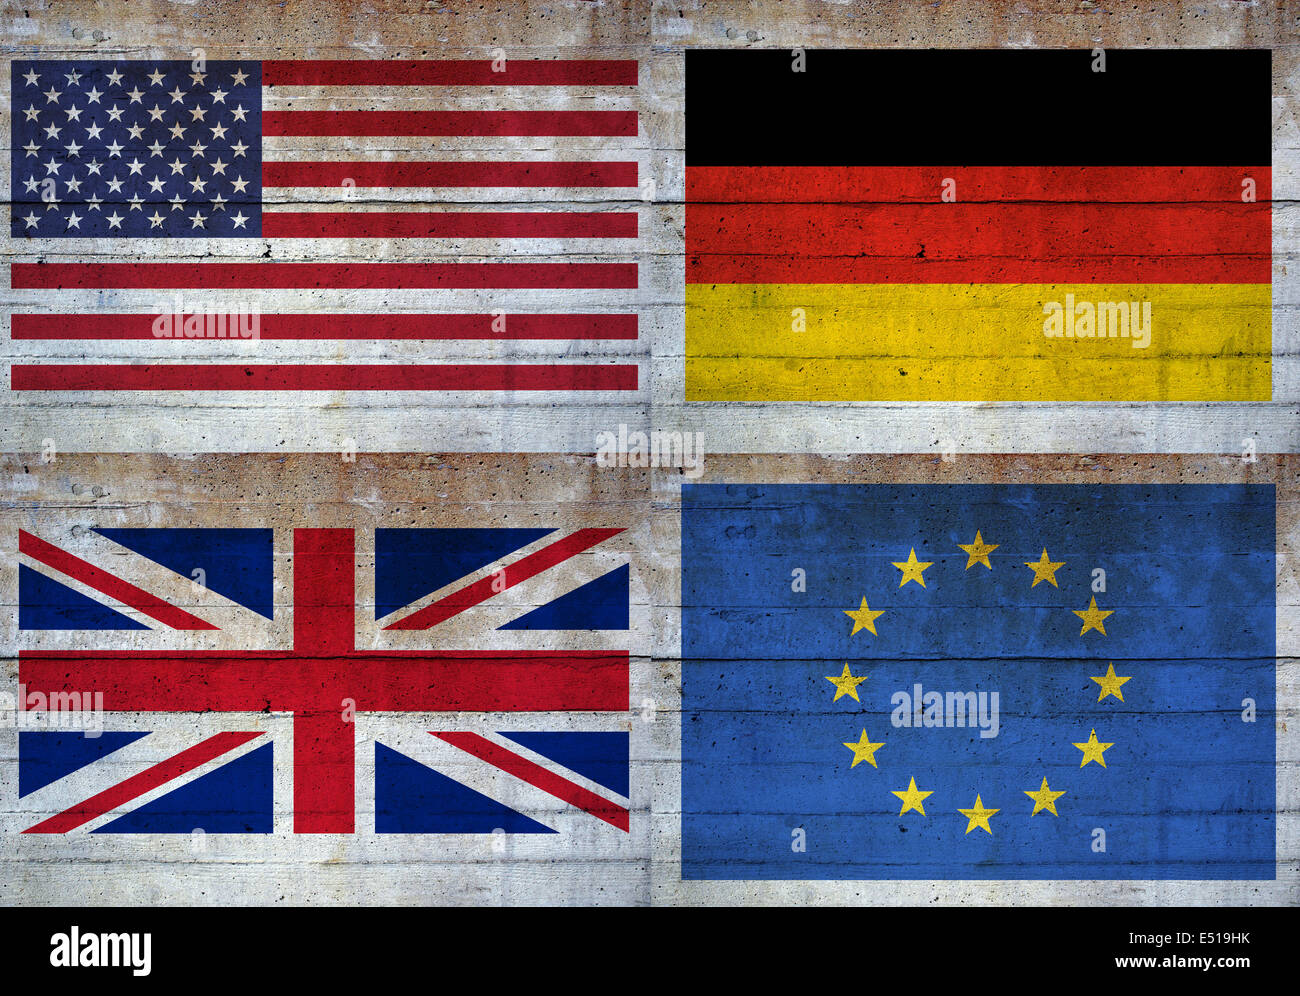 Flags over concrete wall - Stock Image